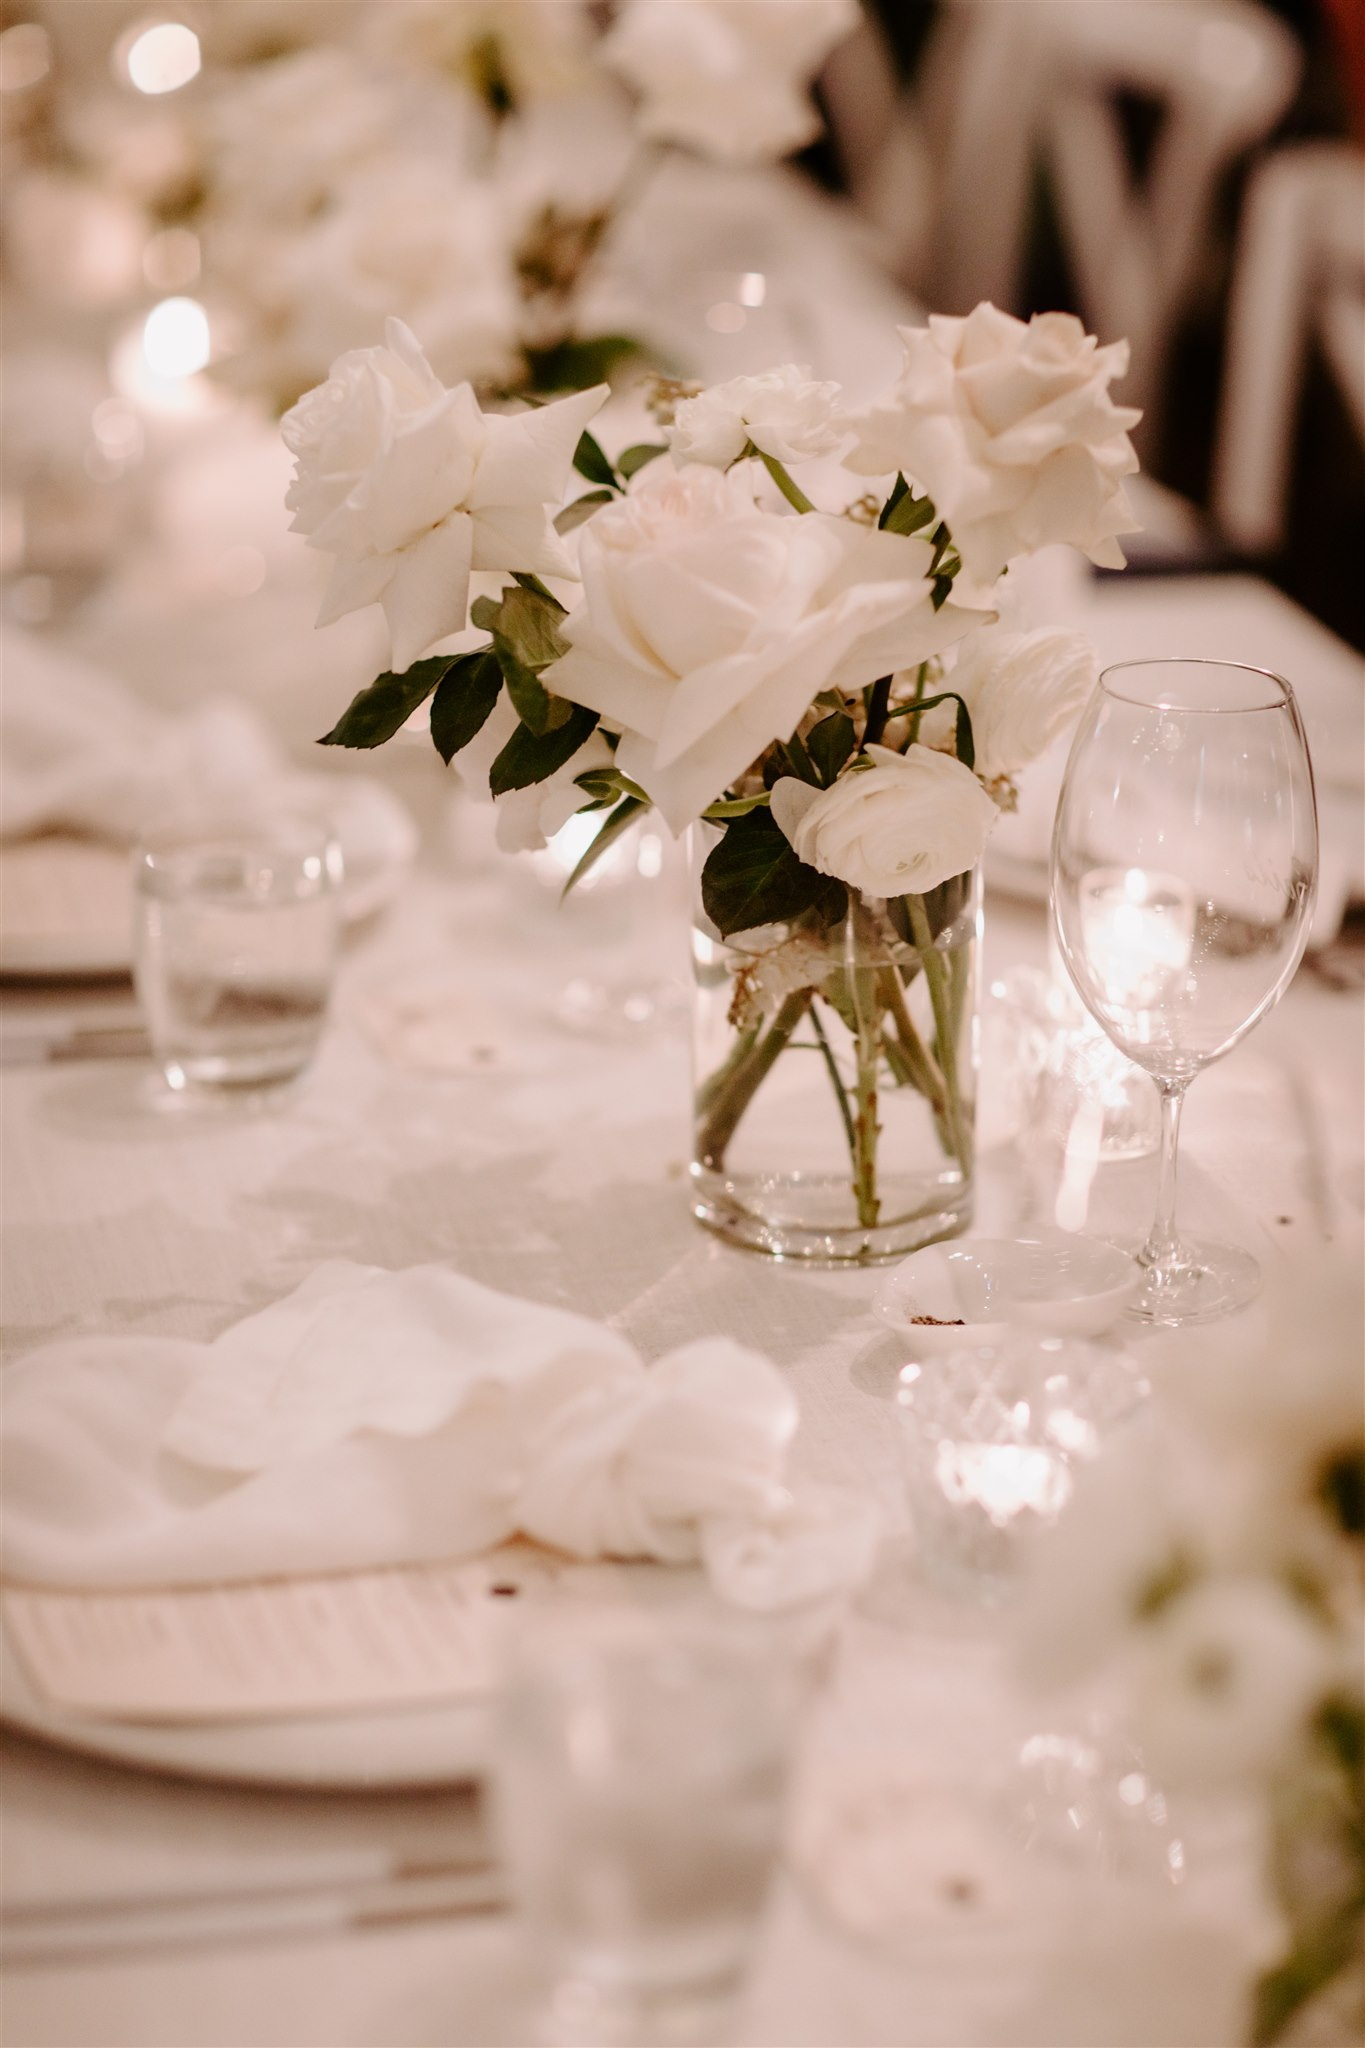 Contemporary glass and crystal vases featuring white blooms